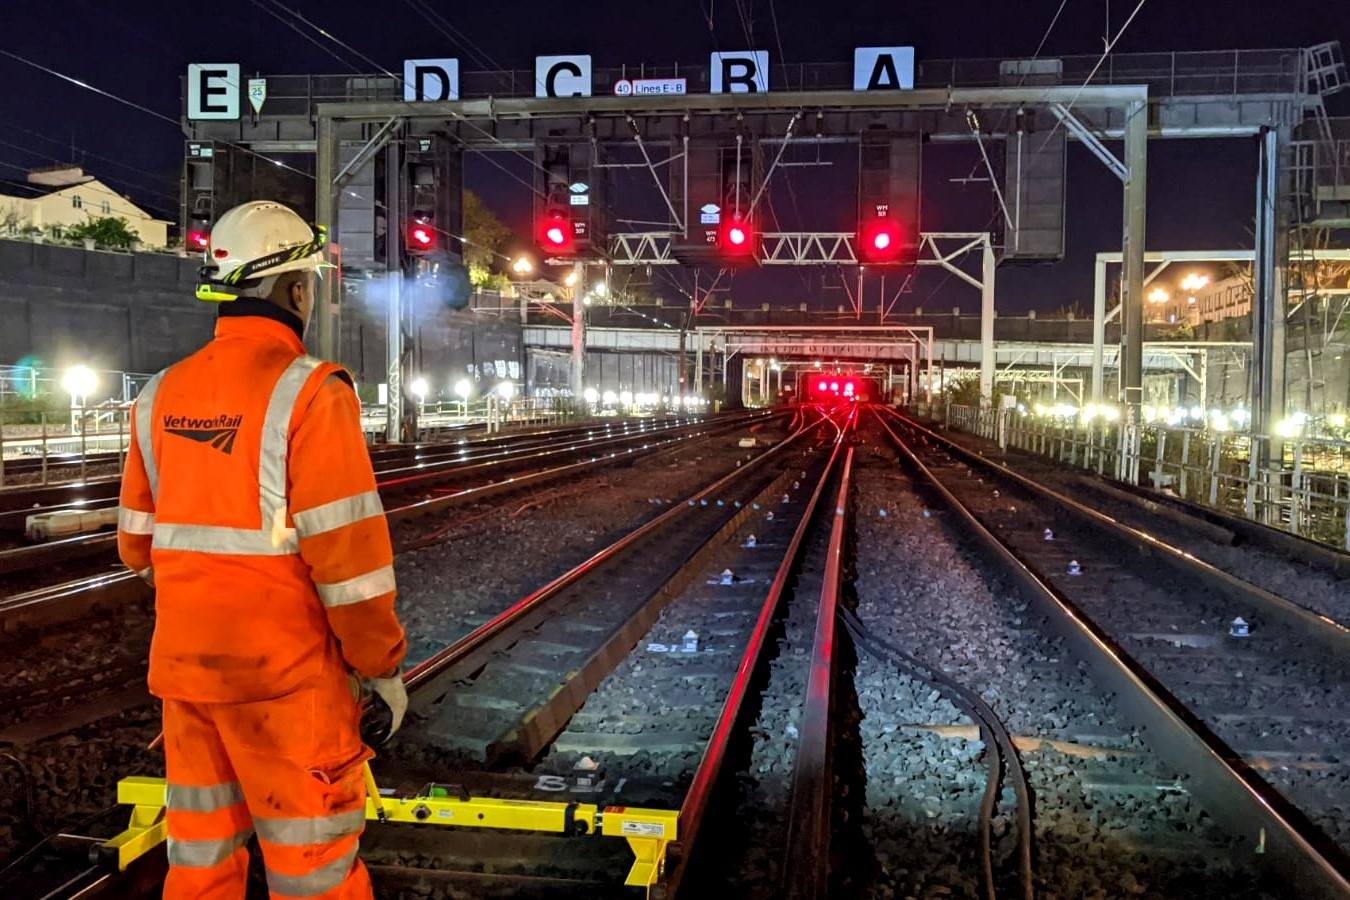 Overnight work to overhead power lines at Euston